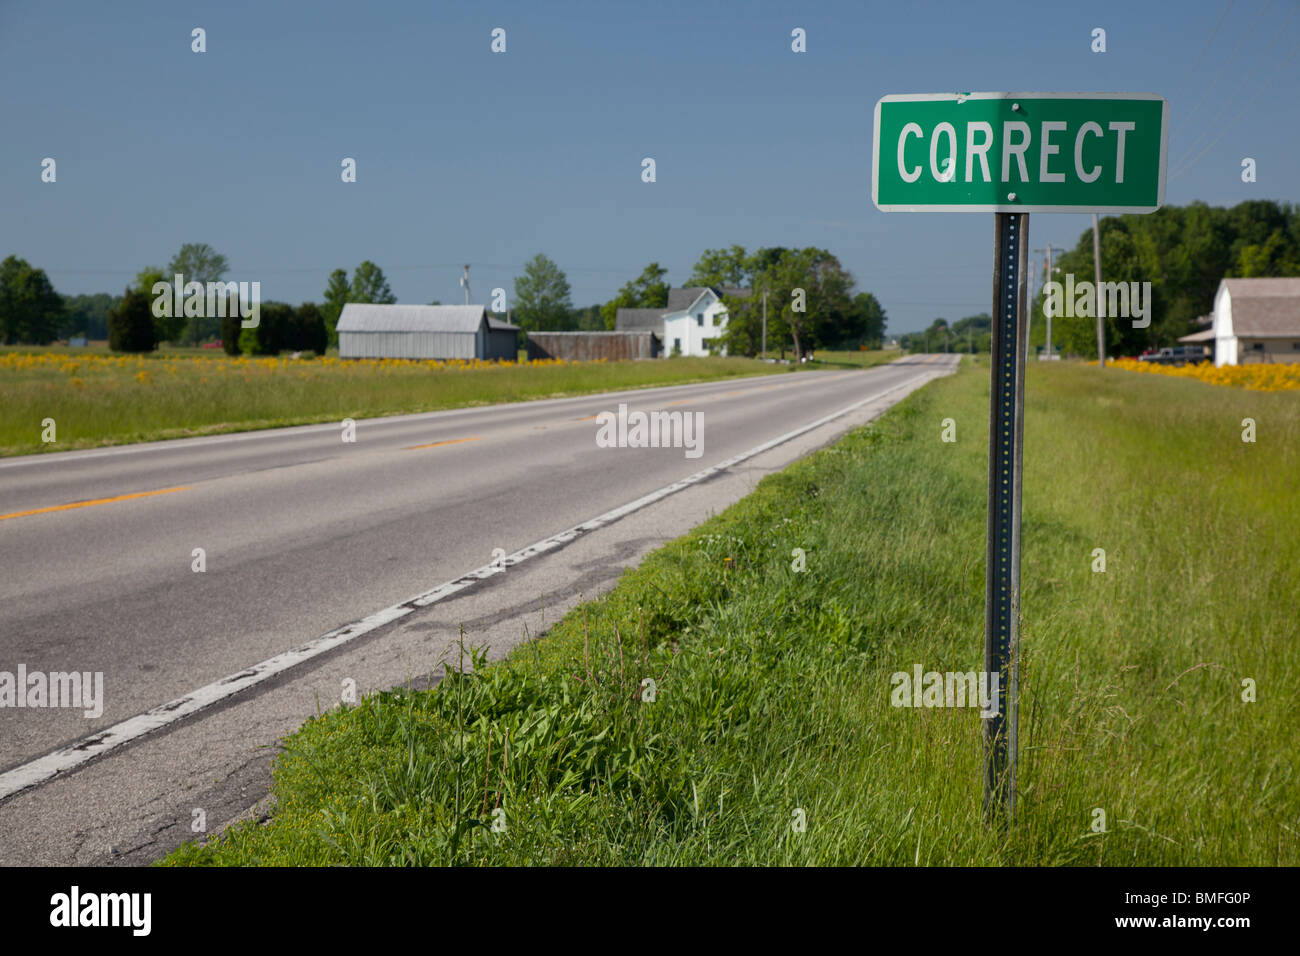 Correct, Indiana - A road sign tells drivers they are arriving in the small town of Correct. - Stock Image